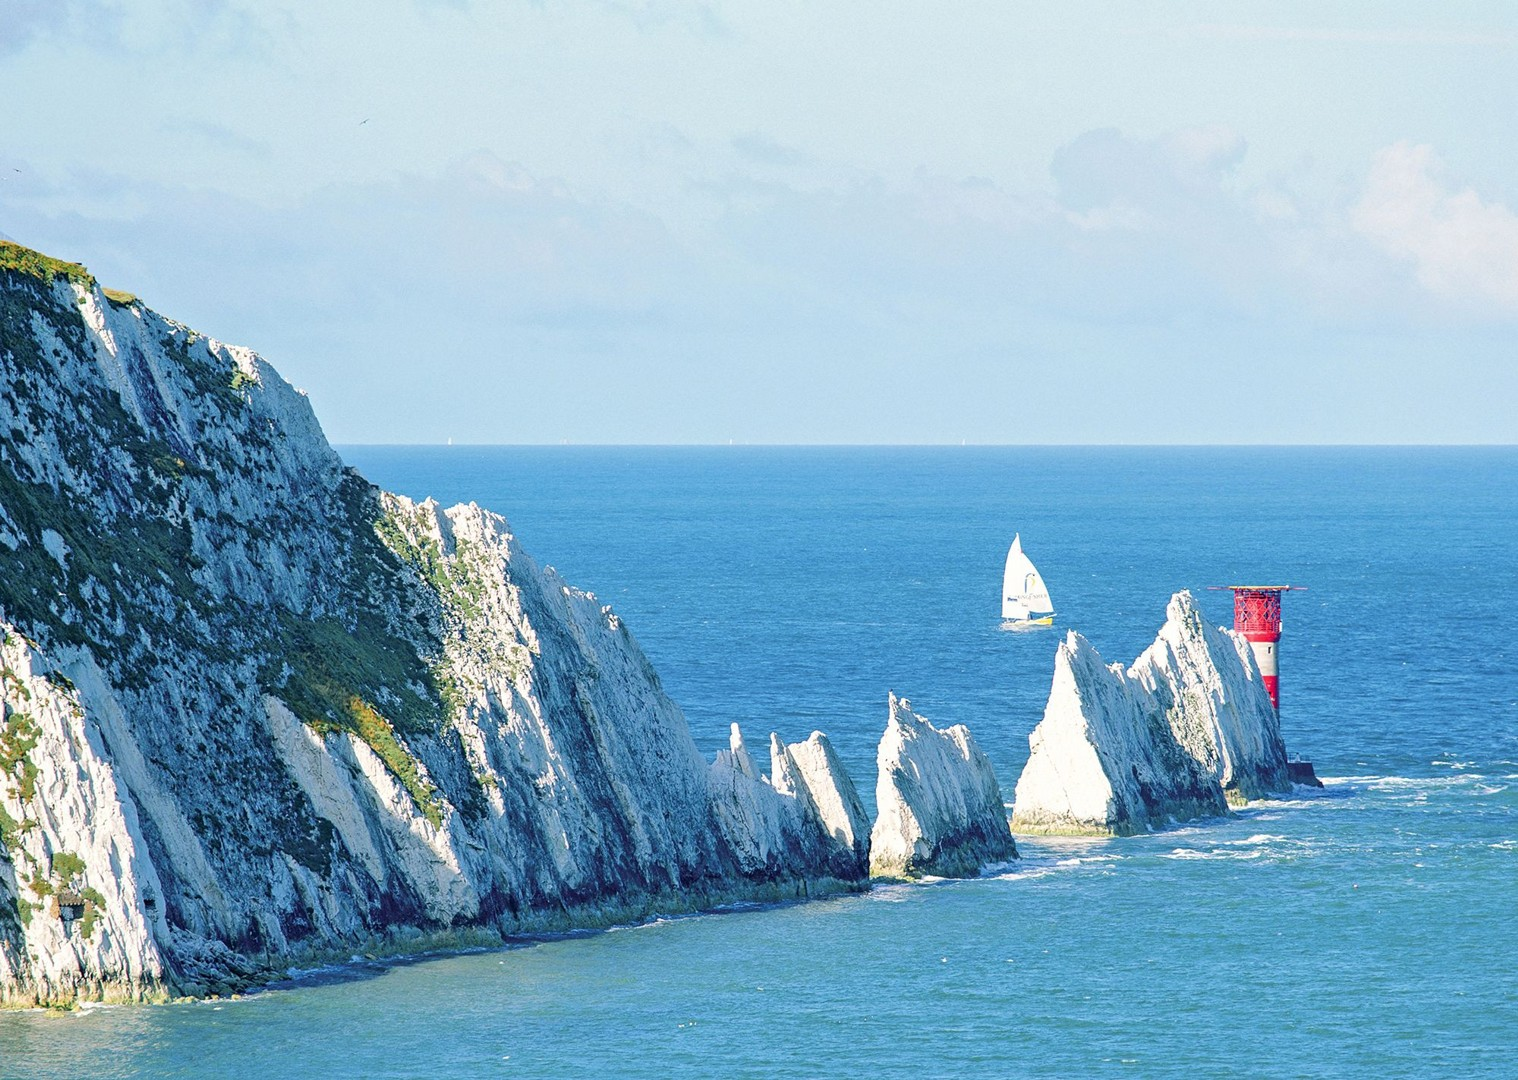 coast-sea-white-cliffs-uk-isle-of-wight-britain-holiday-cycling-bikes.jpg - UK - Isle of Wight - Freshwater Bay - Self-Guided Leisure Cycling Holiday - Leisure Cycling